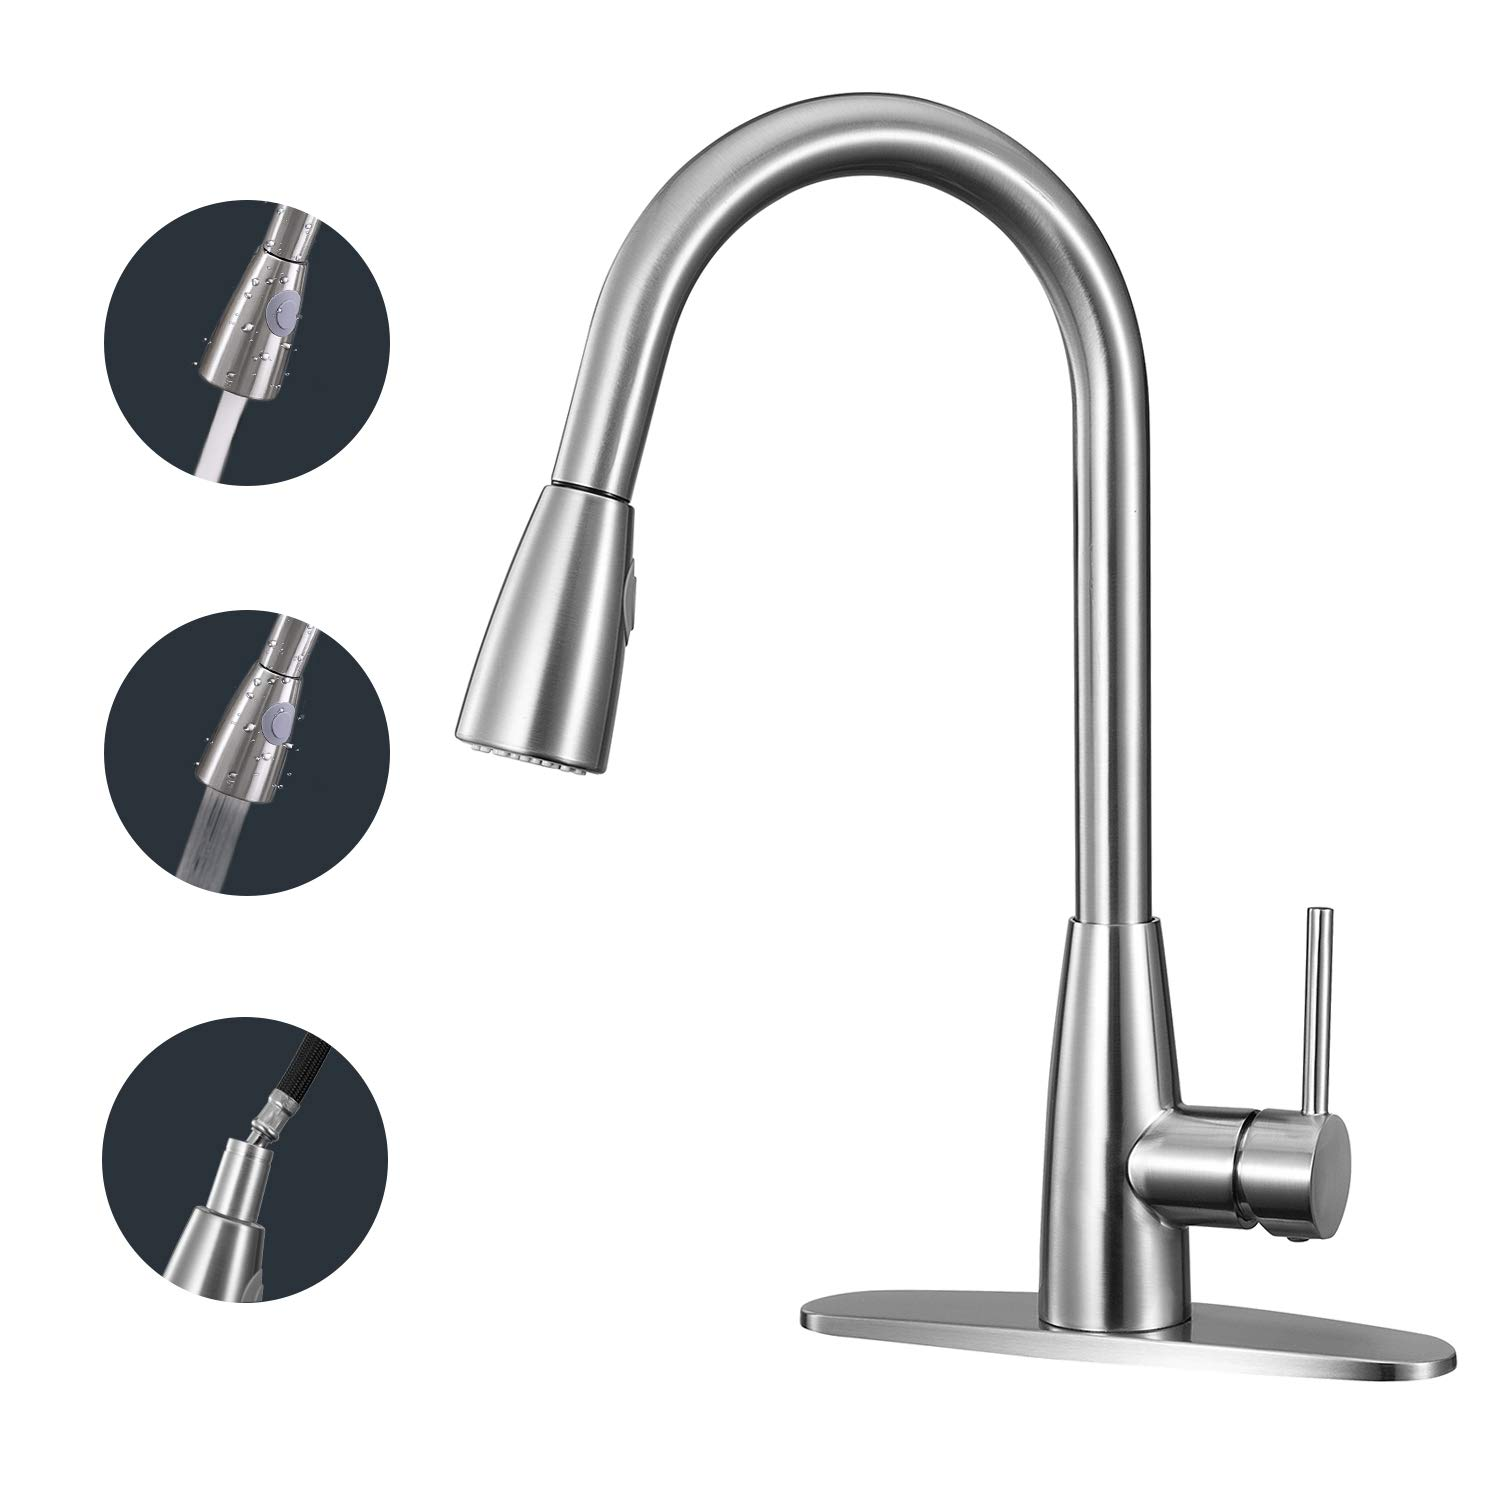 ANZA Kitchen Faucet Single Handle High Arc Faucet